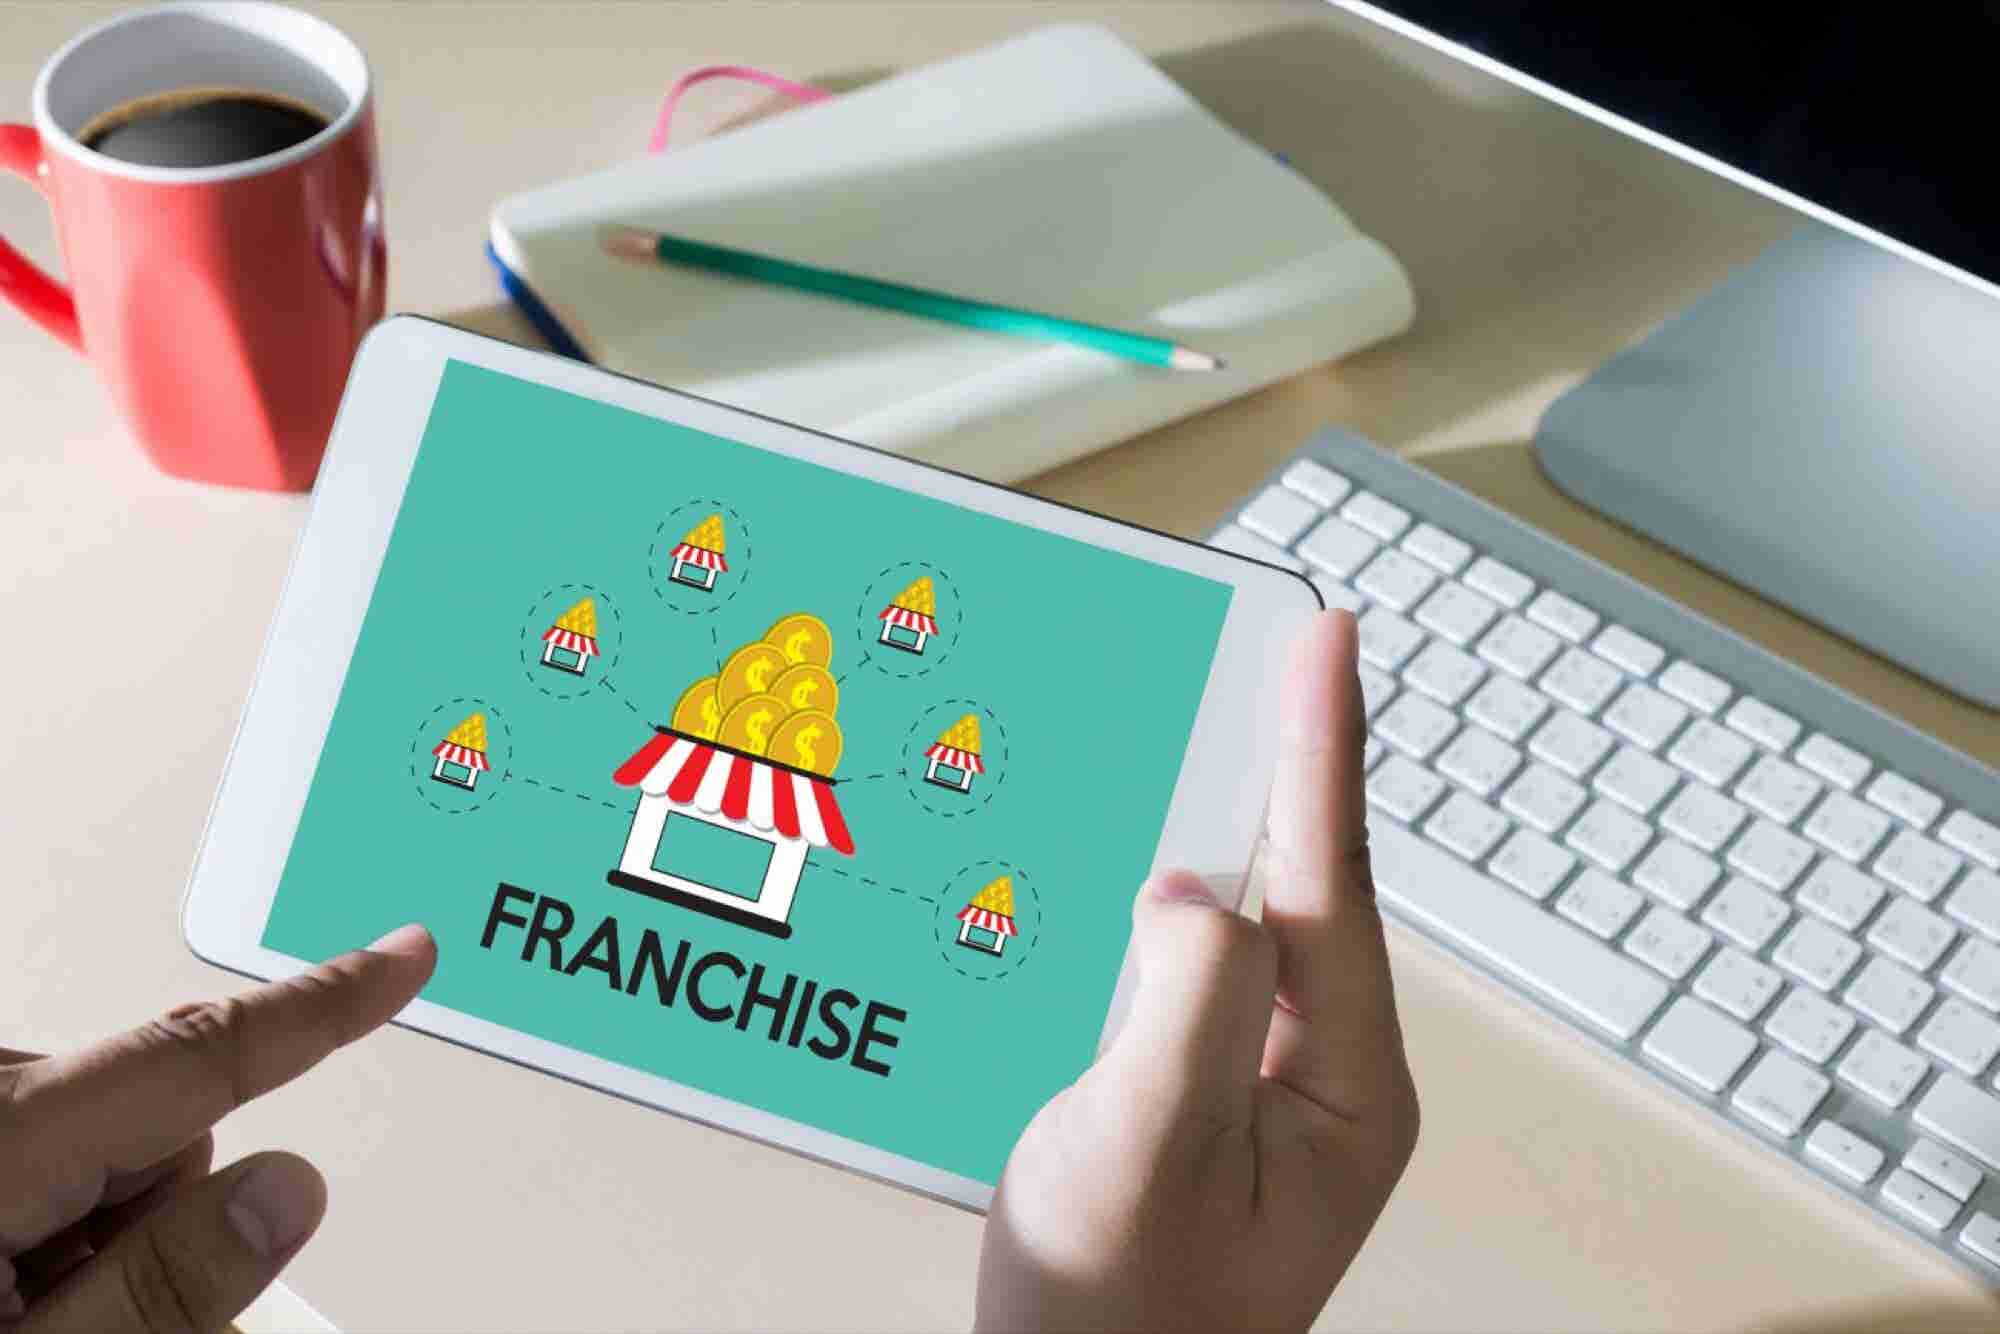 The Secret Sauce to Great Franchise Leadership